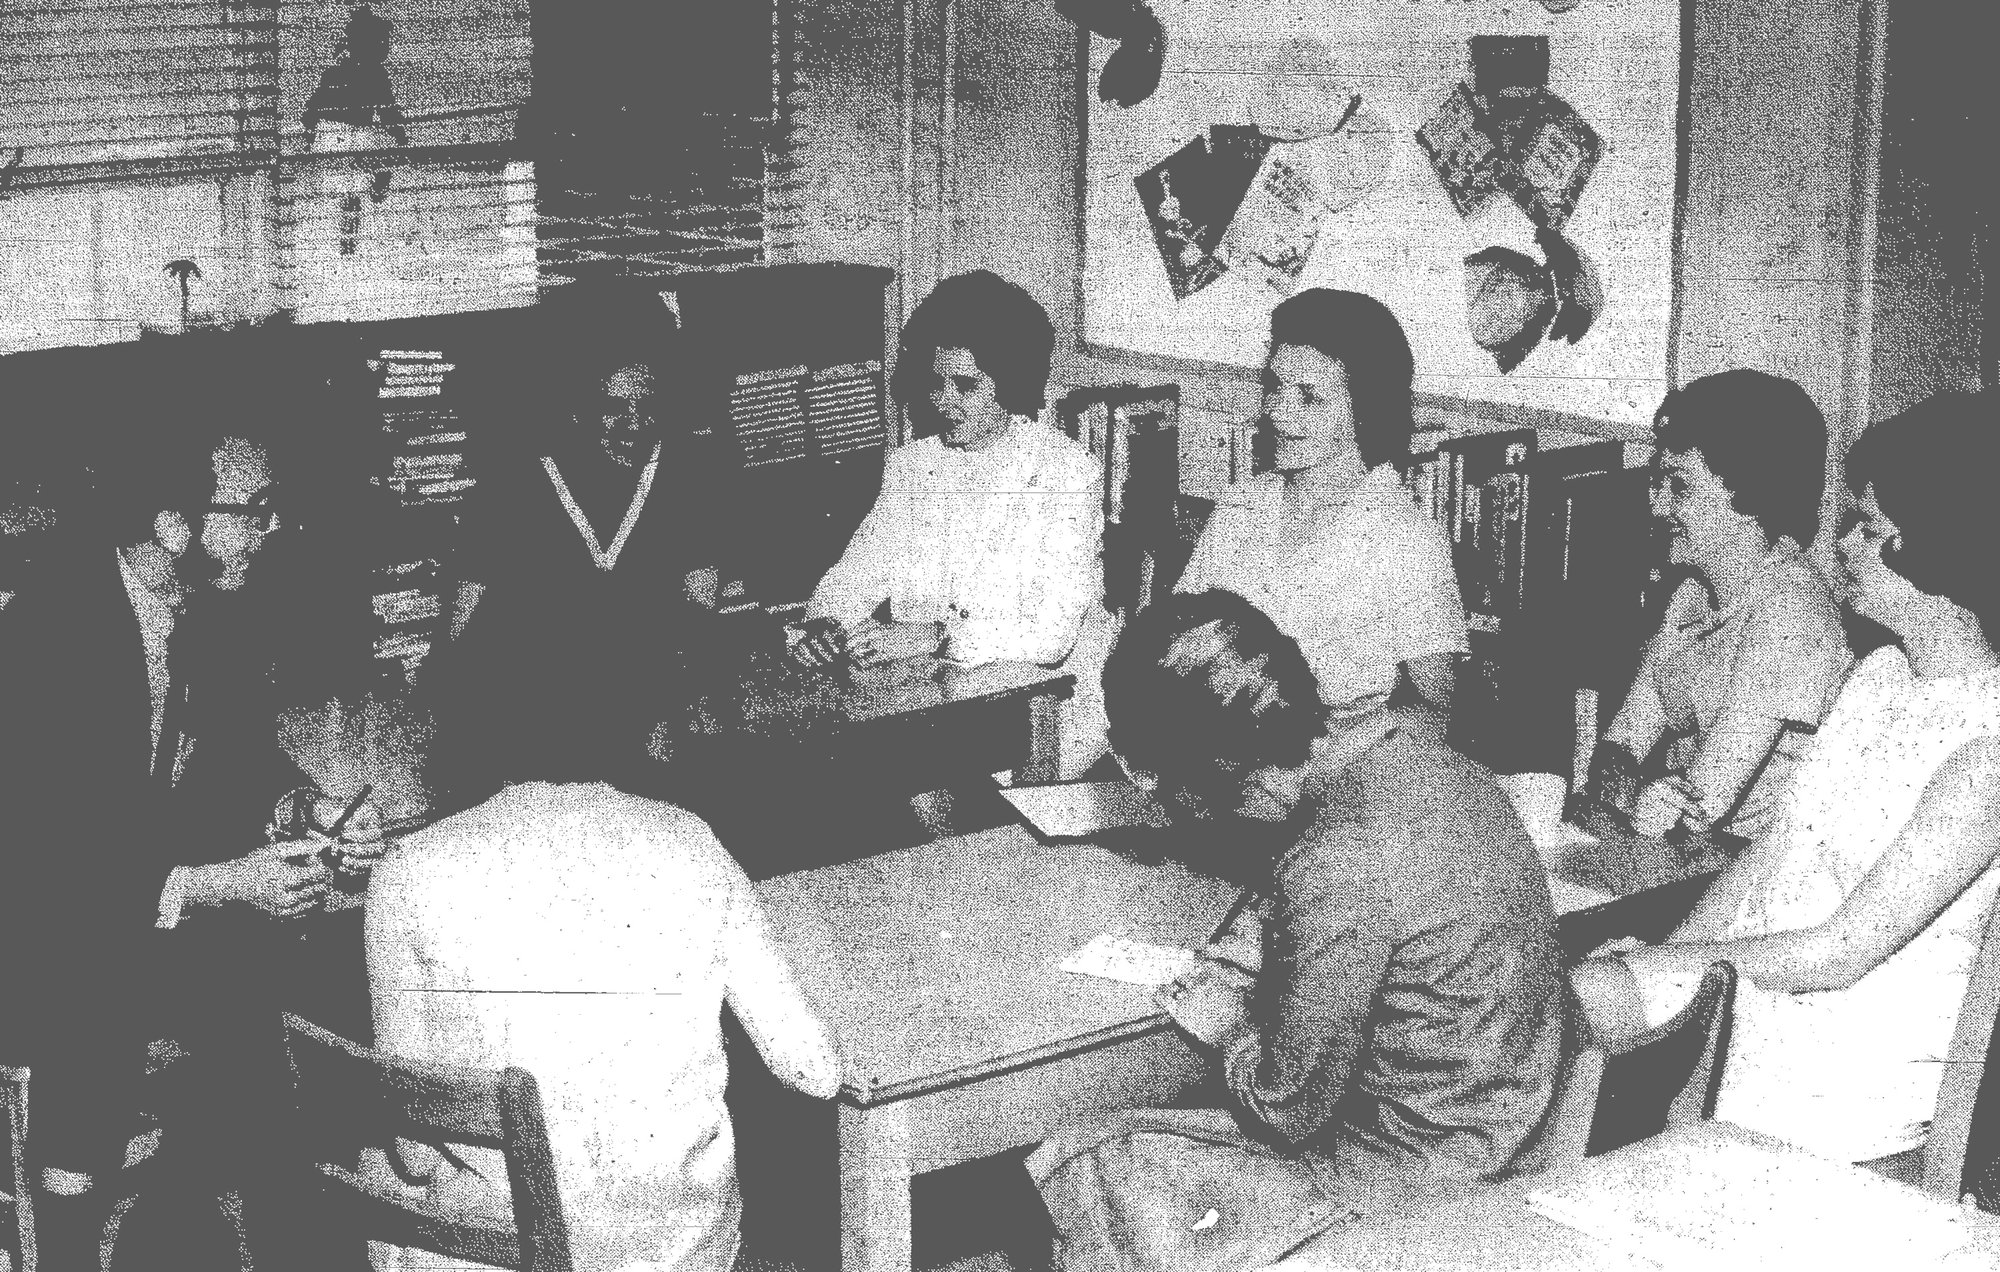 1969 - These teachers at Millwood Elementary School discuss some new ideas in education with two instructors from the Elementary Education Department in the University of South Carolina. Around the table from left are Howard W. Kratz, USC instructor; Doris B. Matthews, USC instructor; and Elaine M. Lareau, Betsy M. Humphries, Louise B. Deaton and Pam Cox, all Millwood teachers. This was part of a two-day in-service program conducted by USC.